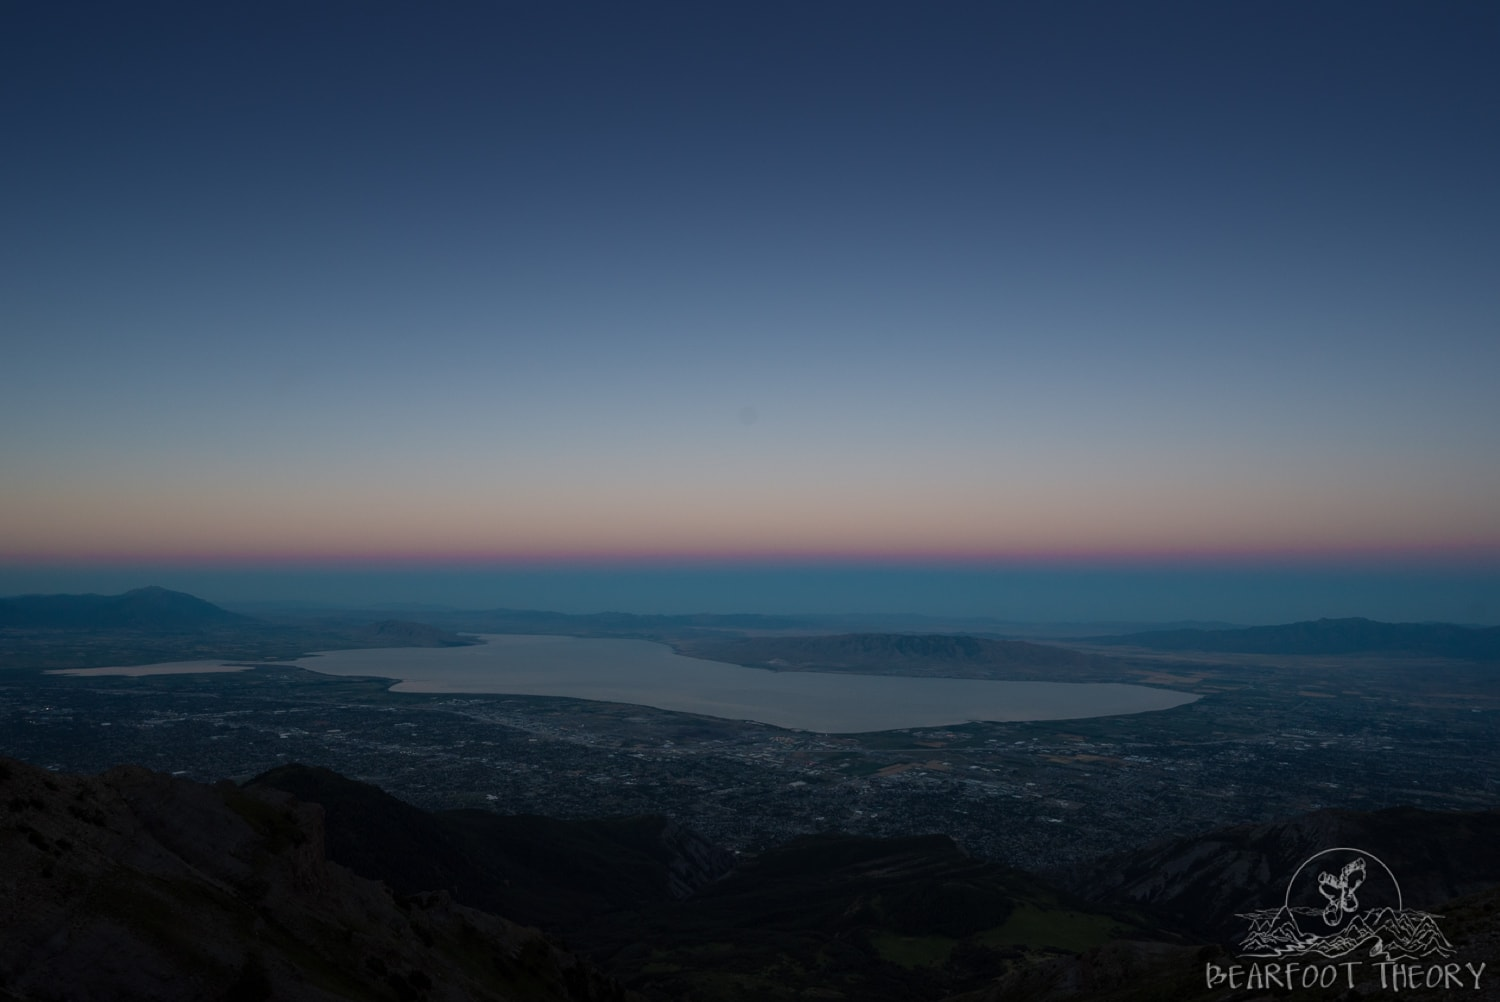 Sunrise over the Salt Lake Valley from the Mount Timpanogos saddle